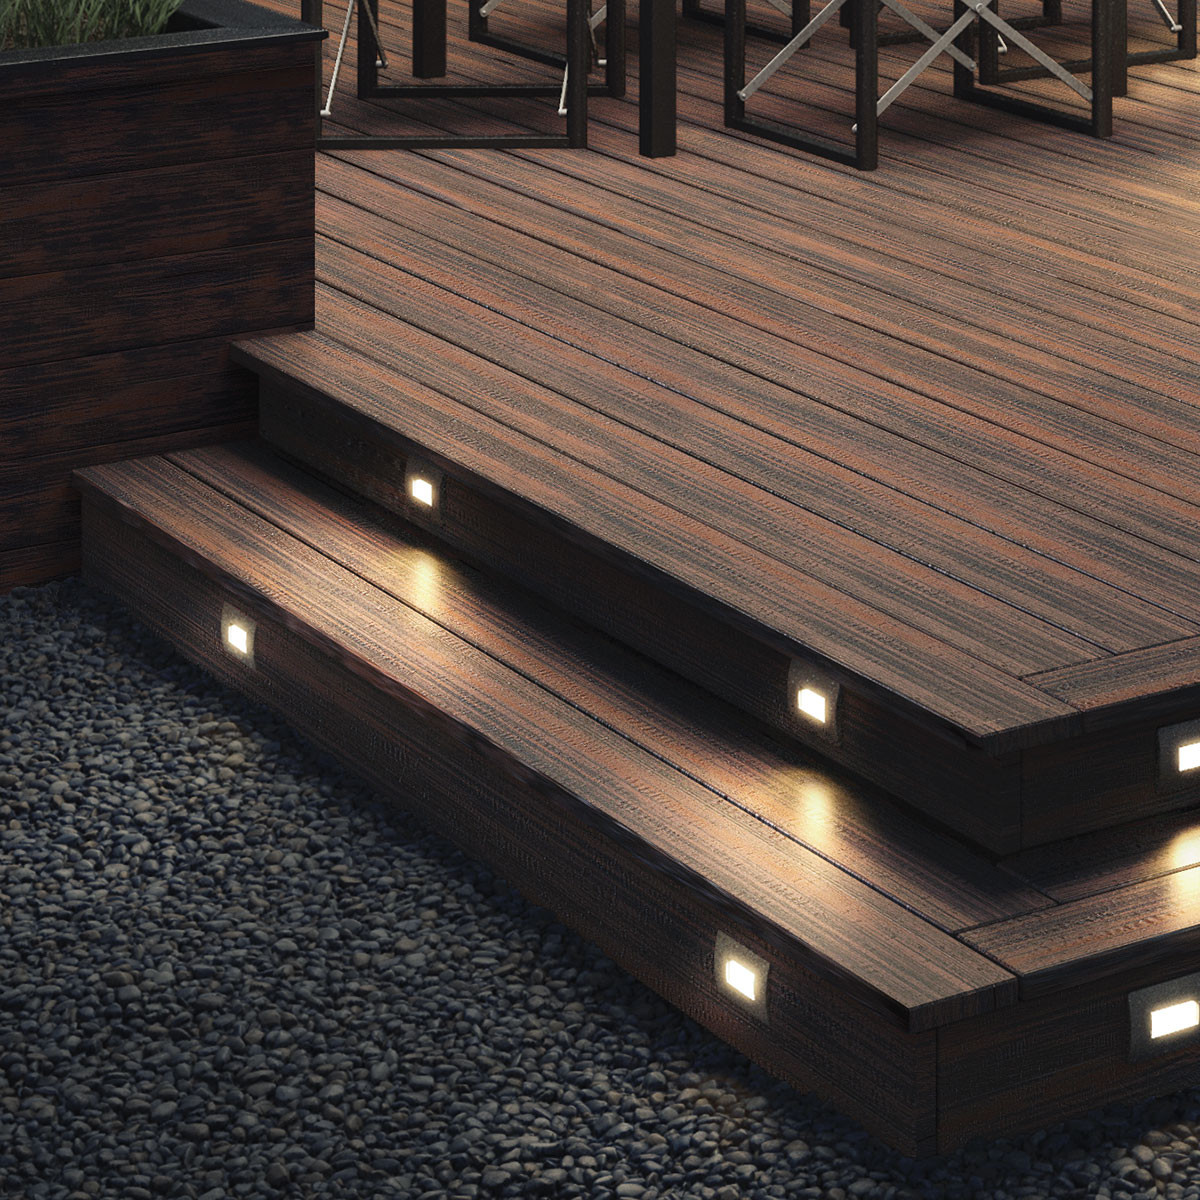 """Highlight high foot-traffic areas like stairs with Deckorators Heritage Fascia Boards in Riverhouse complete with <a href=""""/deckorators-recessed-step-light-kit.html"""">Recessed LED Riser Lights</a>."""